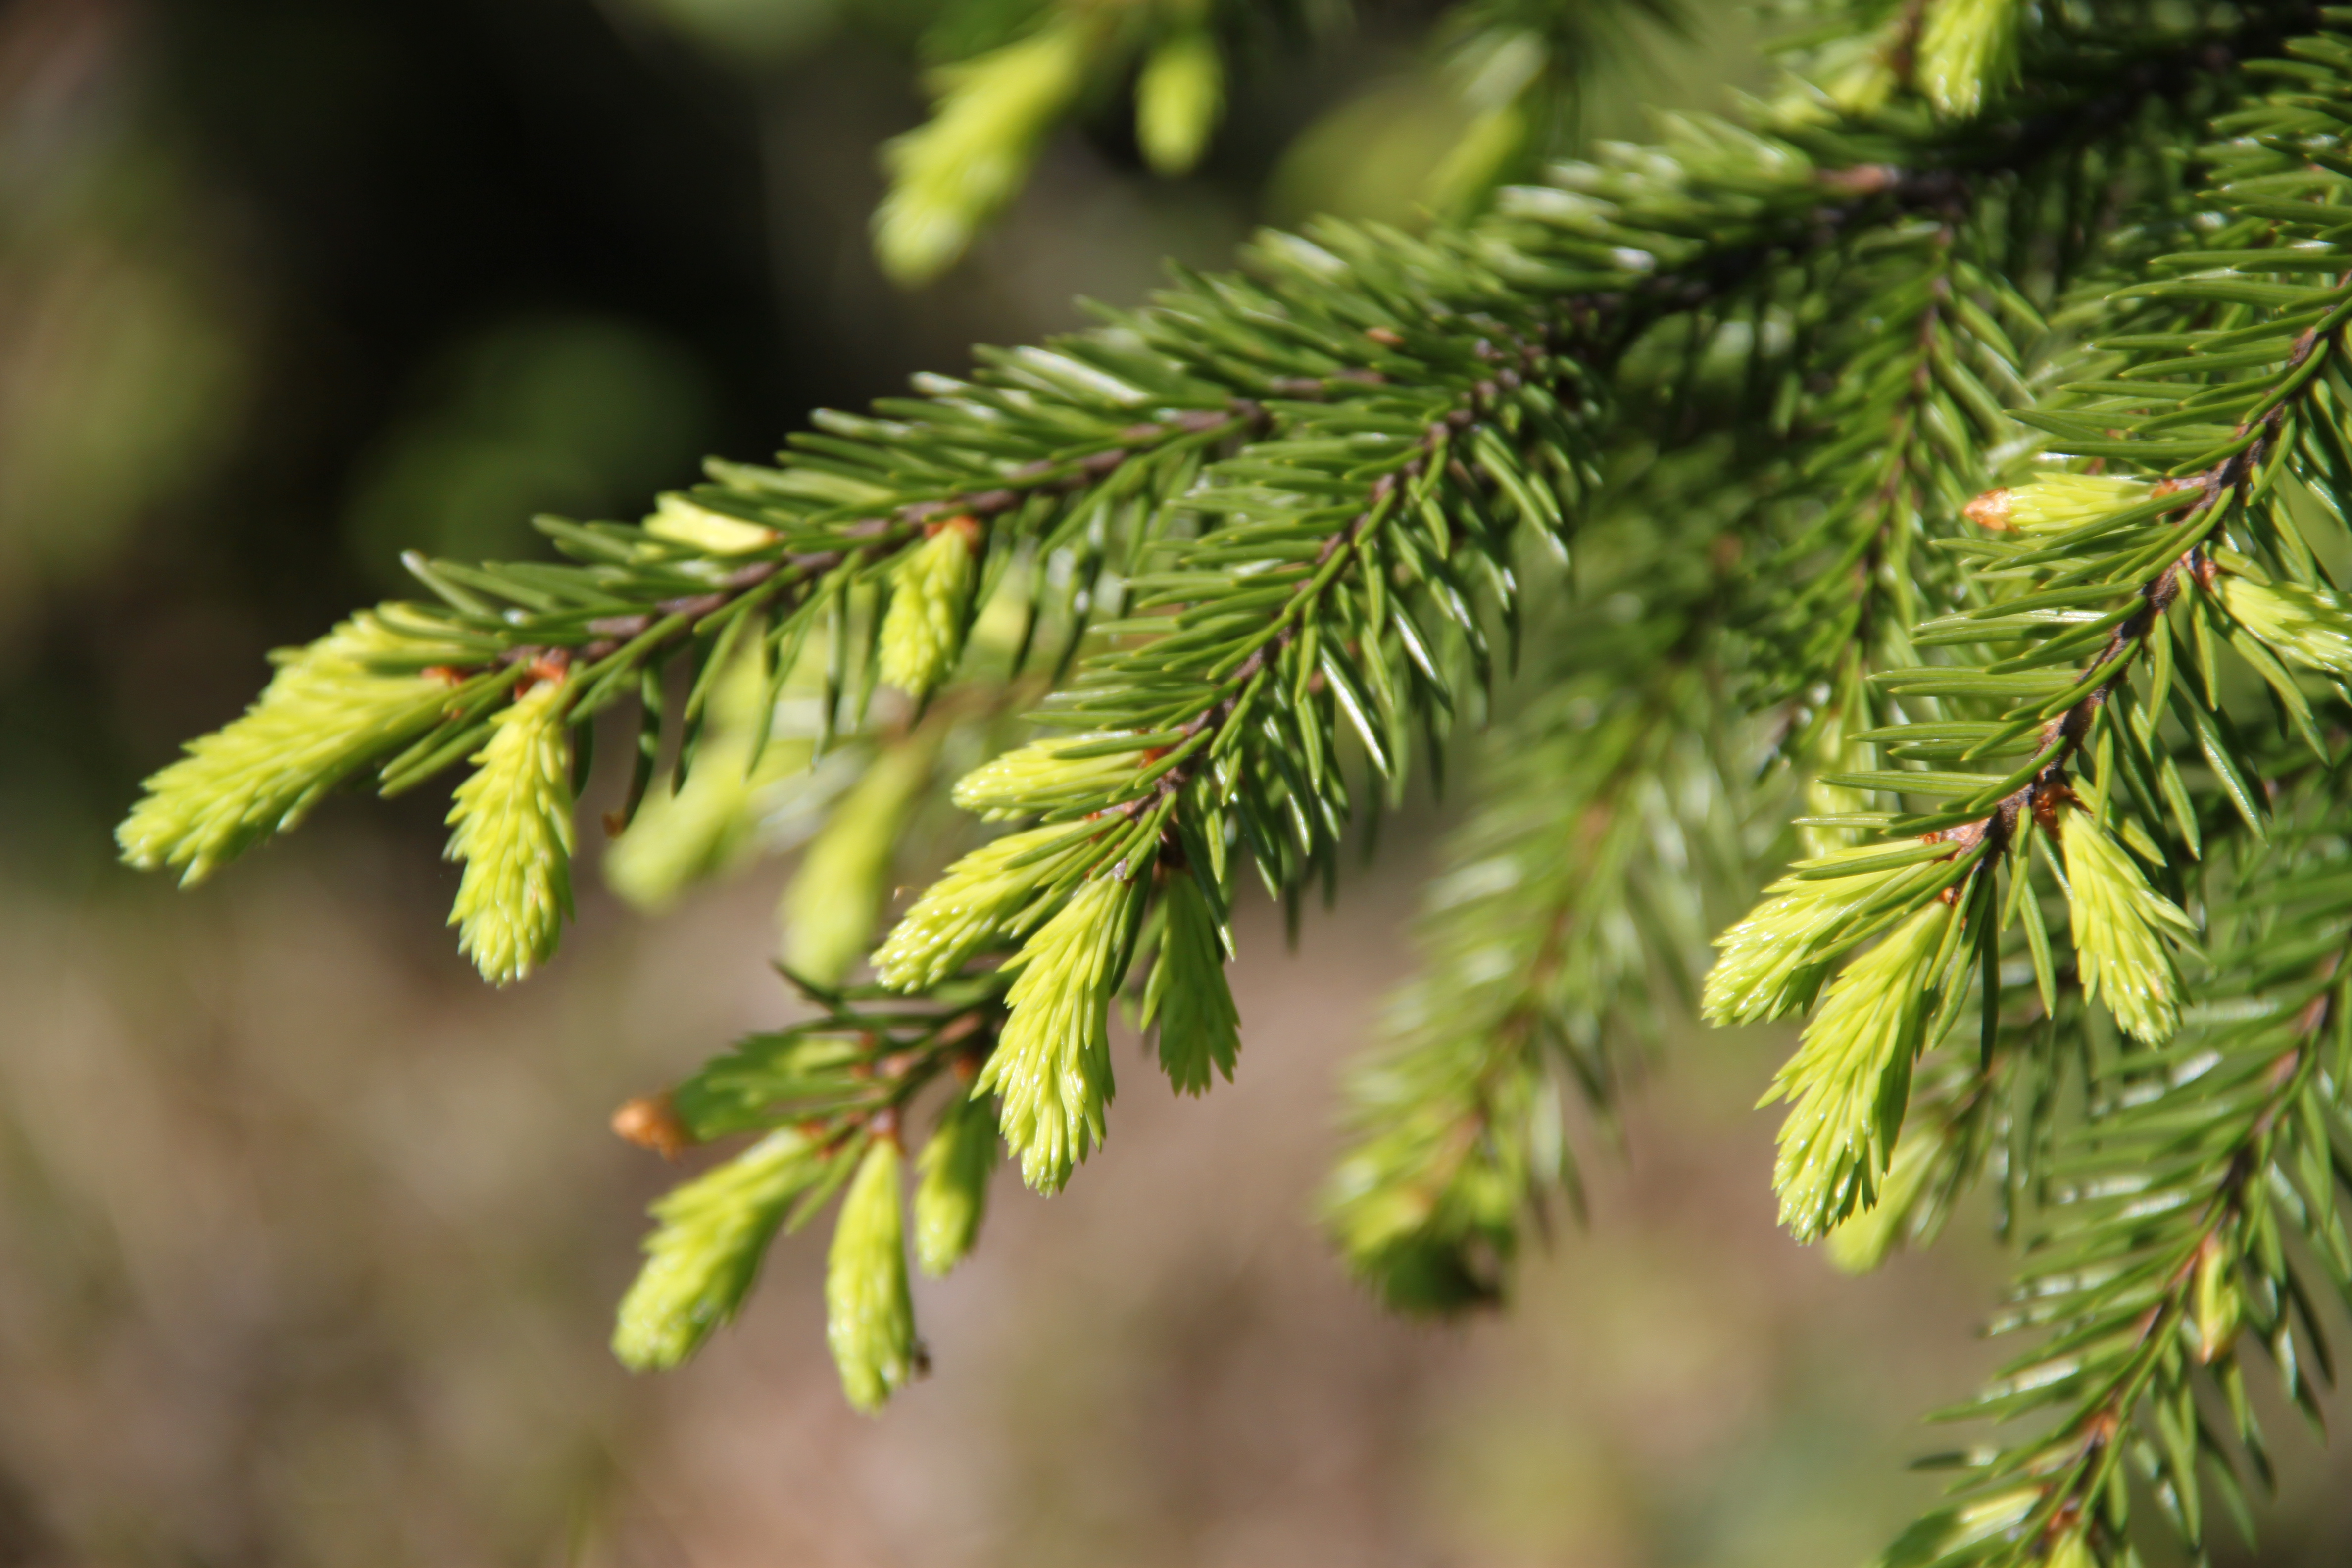 Download the full-sized image of New needles - Norway Spruce - Lulea, Sweden - Photograph